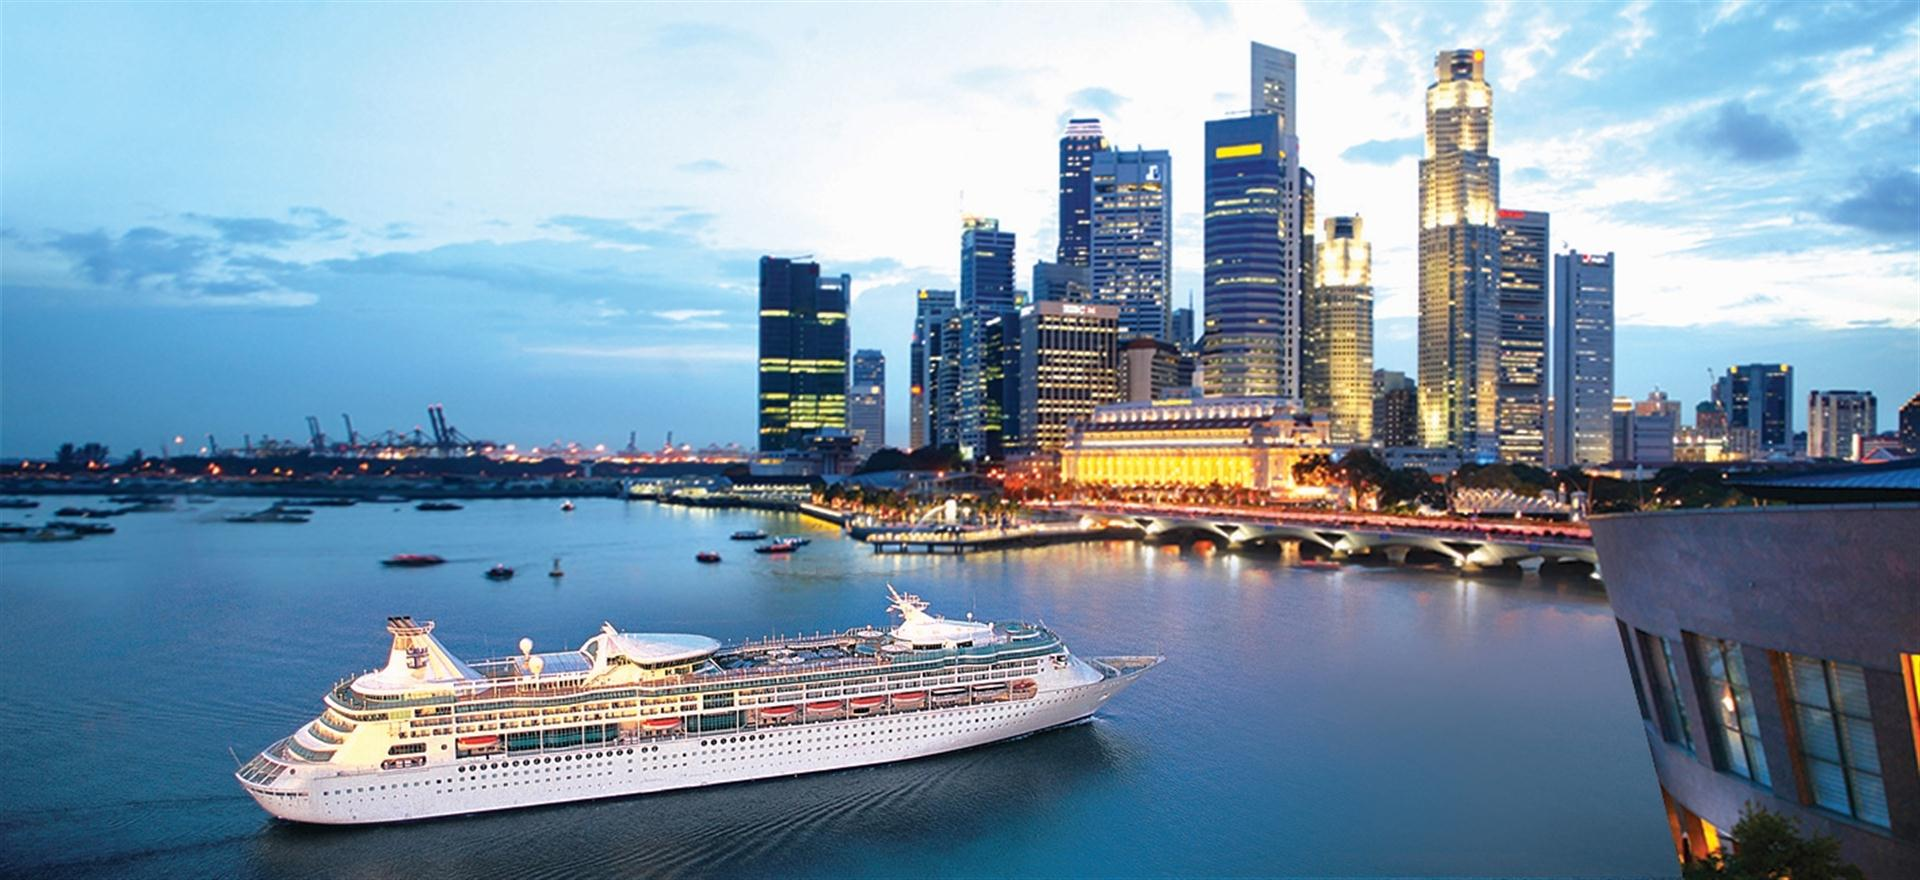 CROAZIERA DE GRUP – VOYAGER OF THE SEAS    Hong Kong - Macao – Vietnam – Singapore